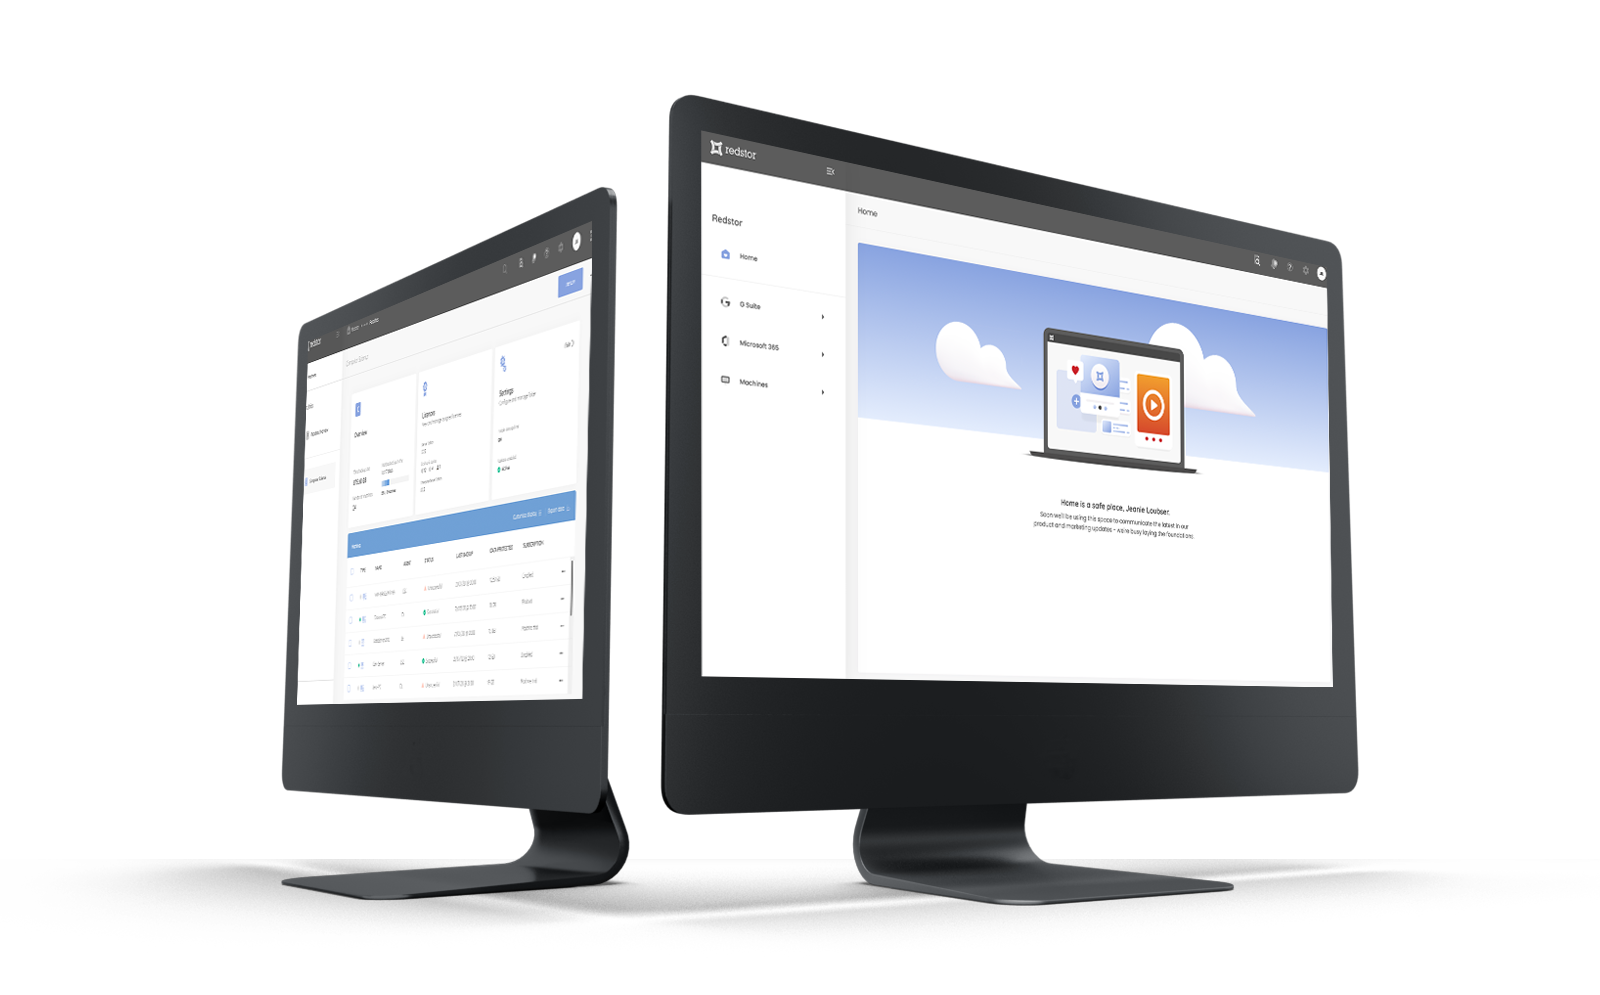 Cloud backup and recovery console